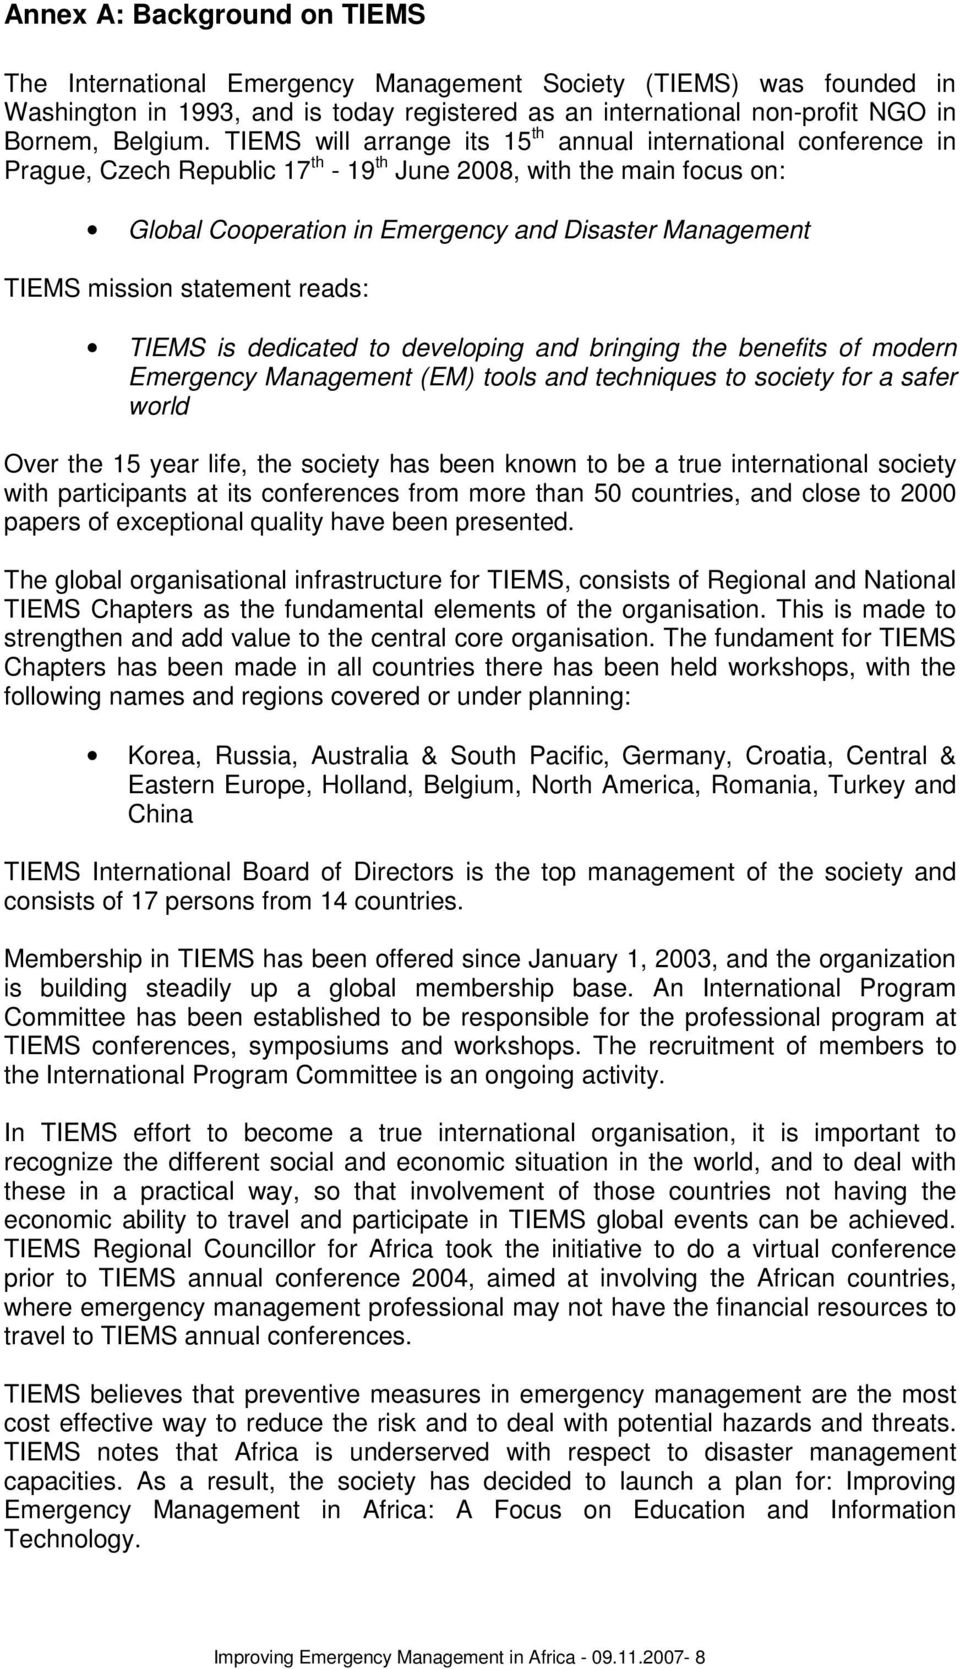 mission statement reads: TIEMS is dedicated to developing and bringing the benefits of modern Emergency Management (EM) tools and techniques to society for a safer world Over the 15 year life, the